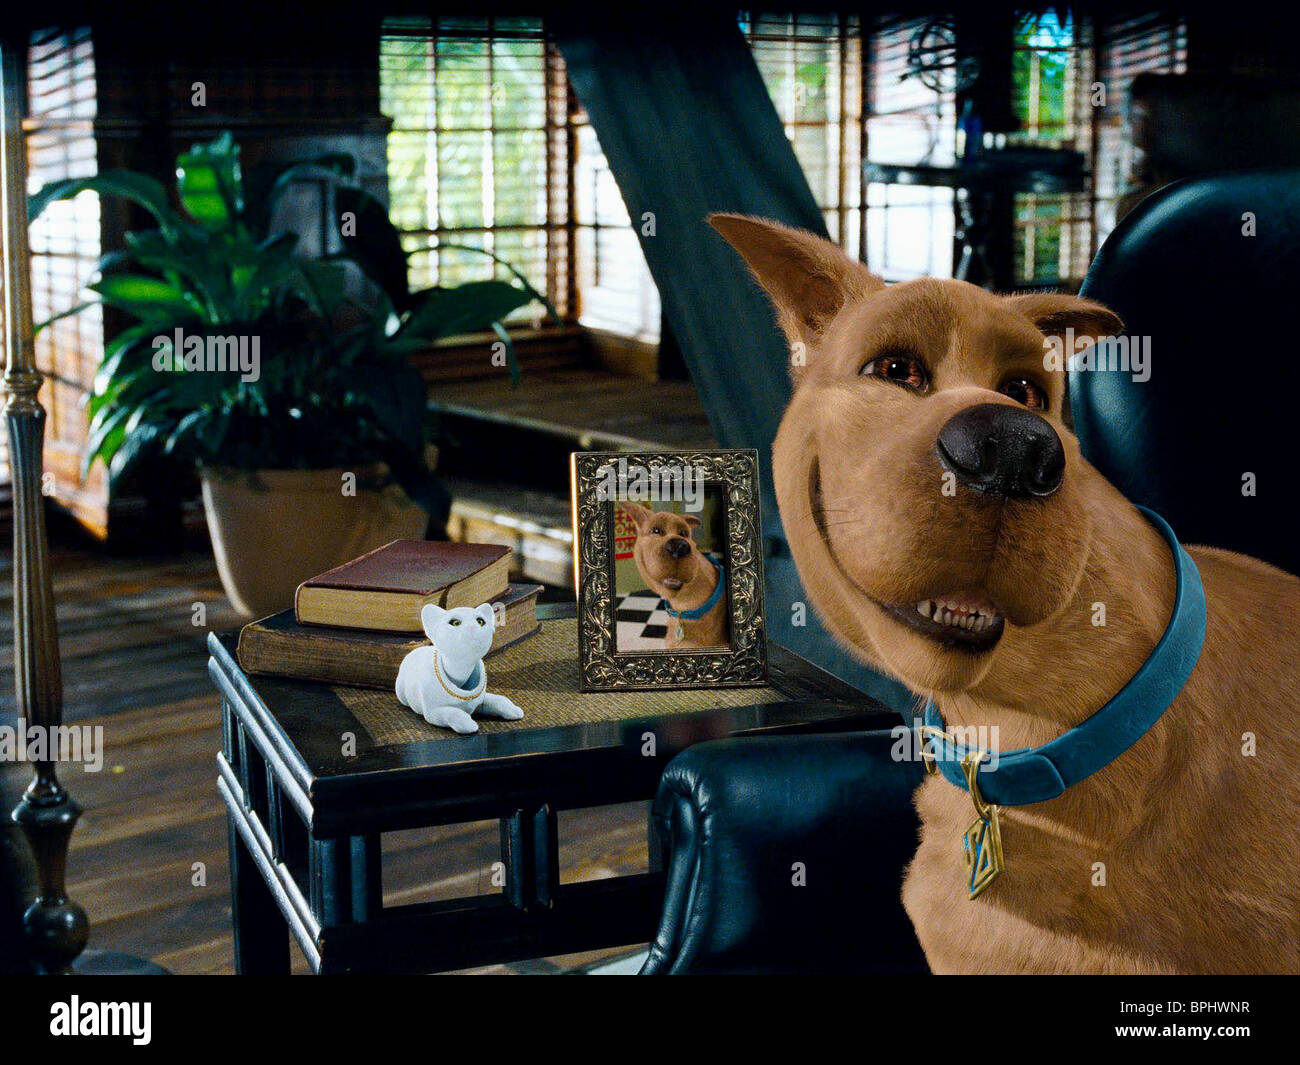 scooby doo chair covers for table film title stock photos and